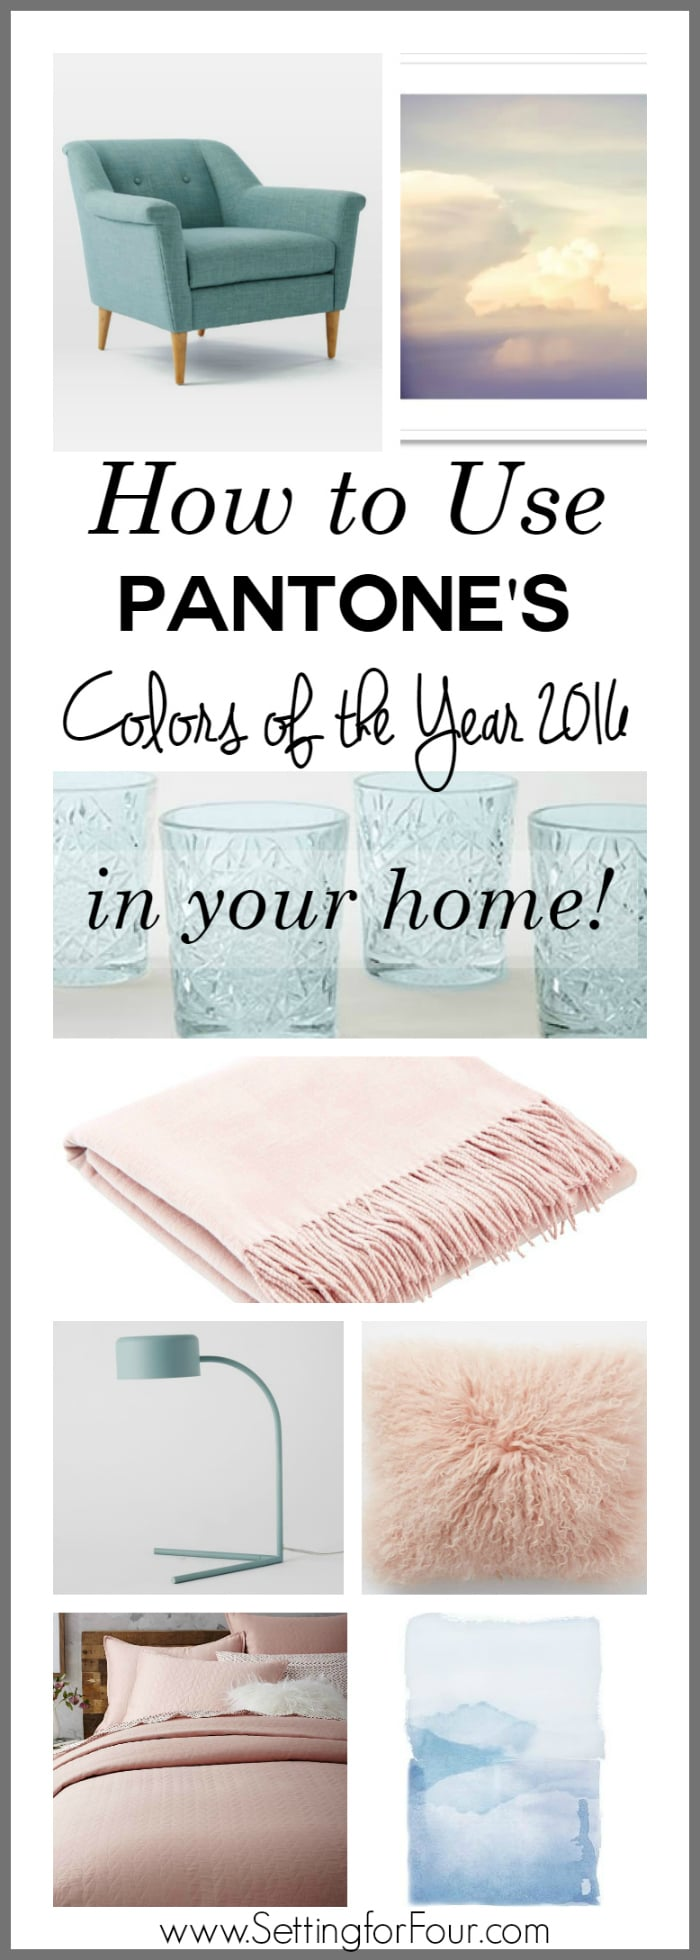 How to use Pantone's Colors of the Year 2016 Rose Quartz and Serenity in your home - decor ideas that work! www.settingforfour.com